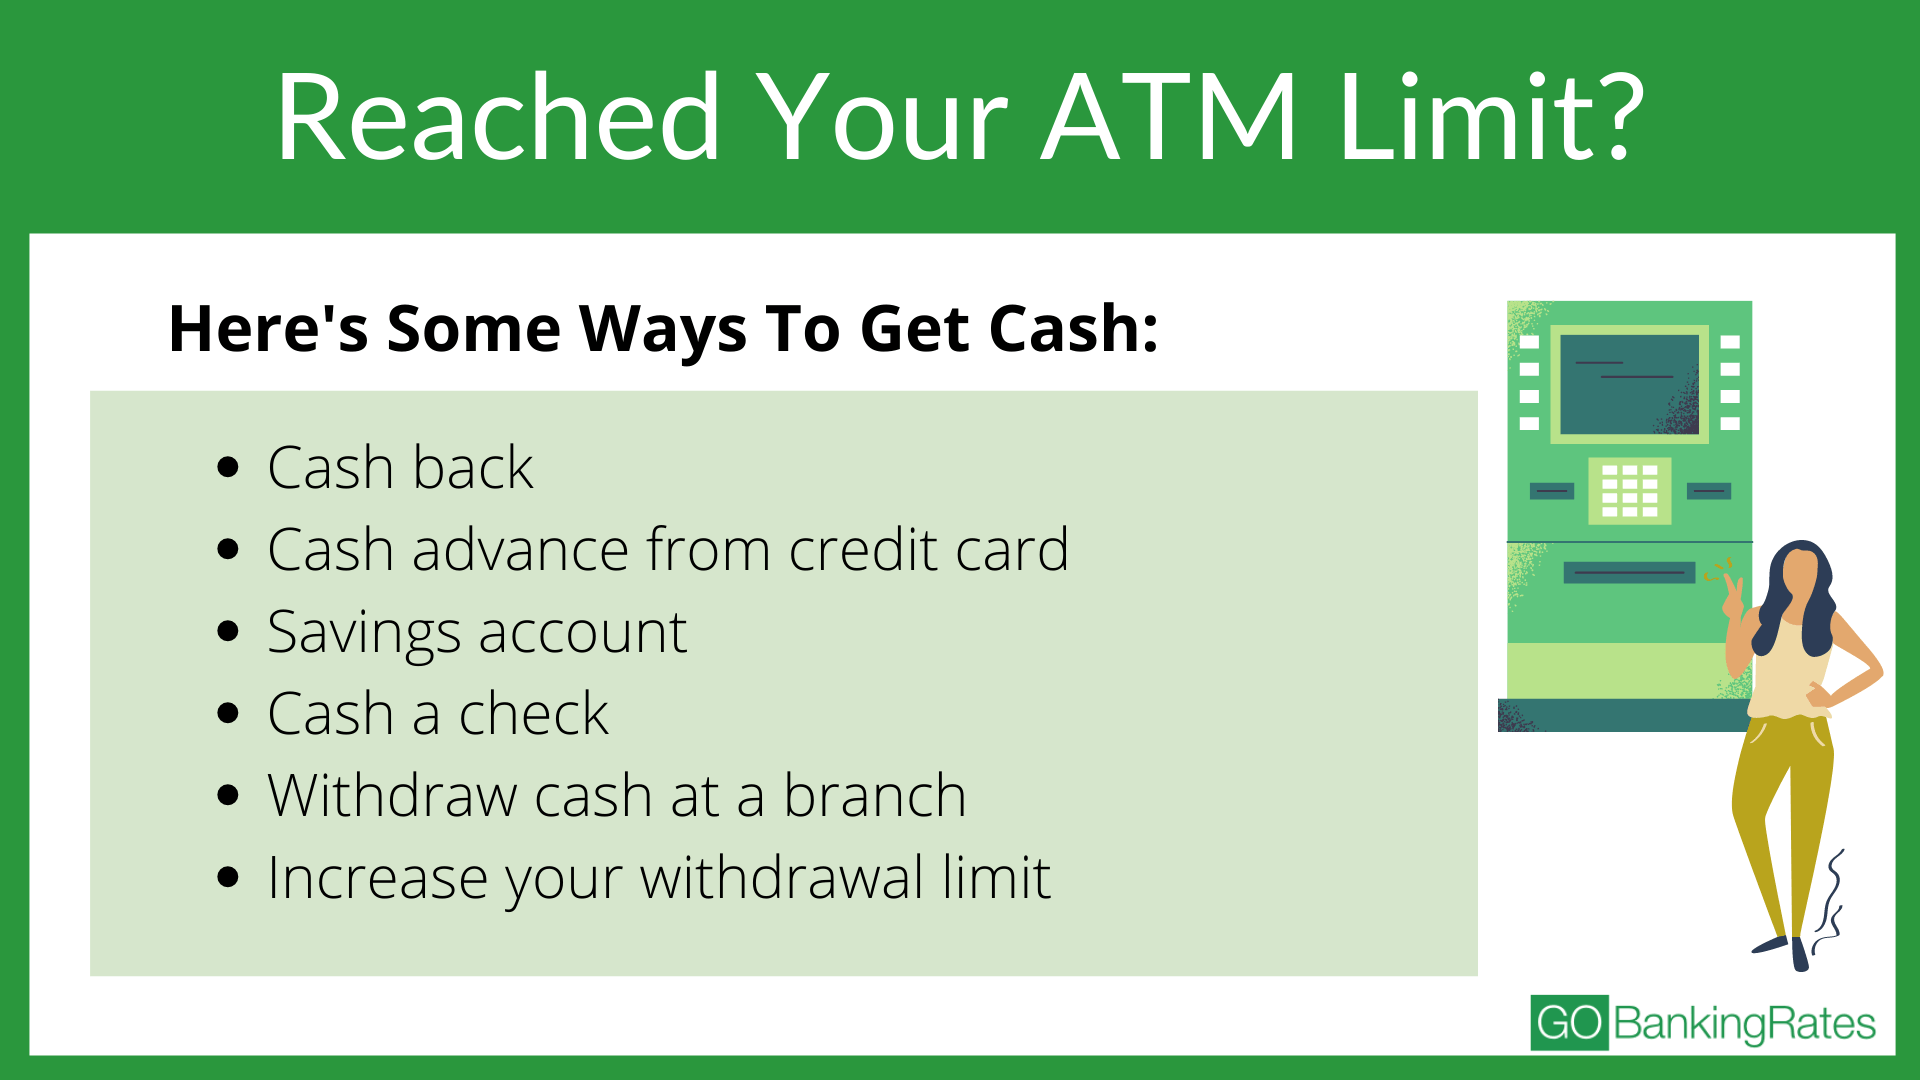 guide on what to do if you've reached your atm limits